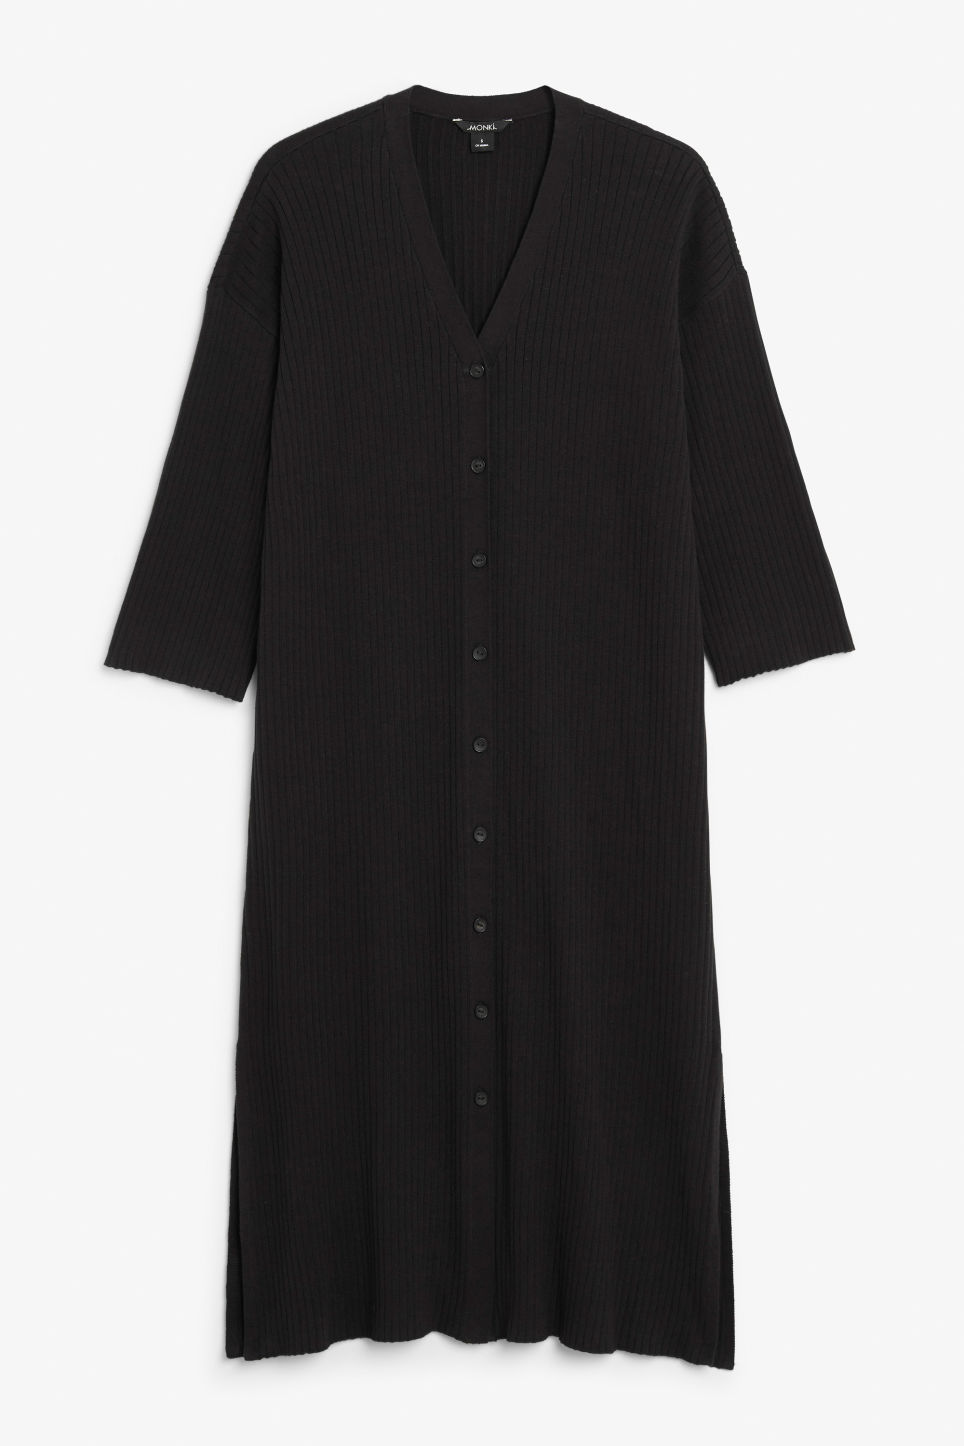 Front image of Monki side slit cardigan dress in black